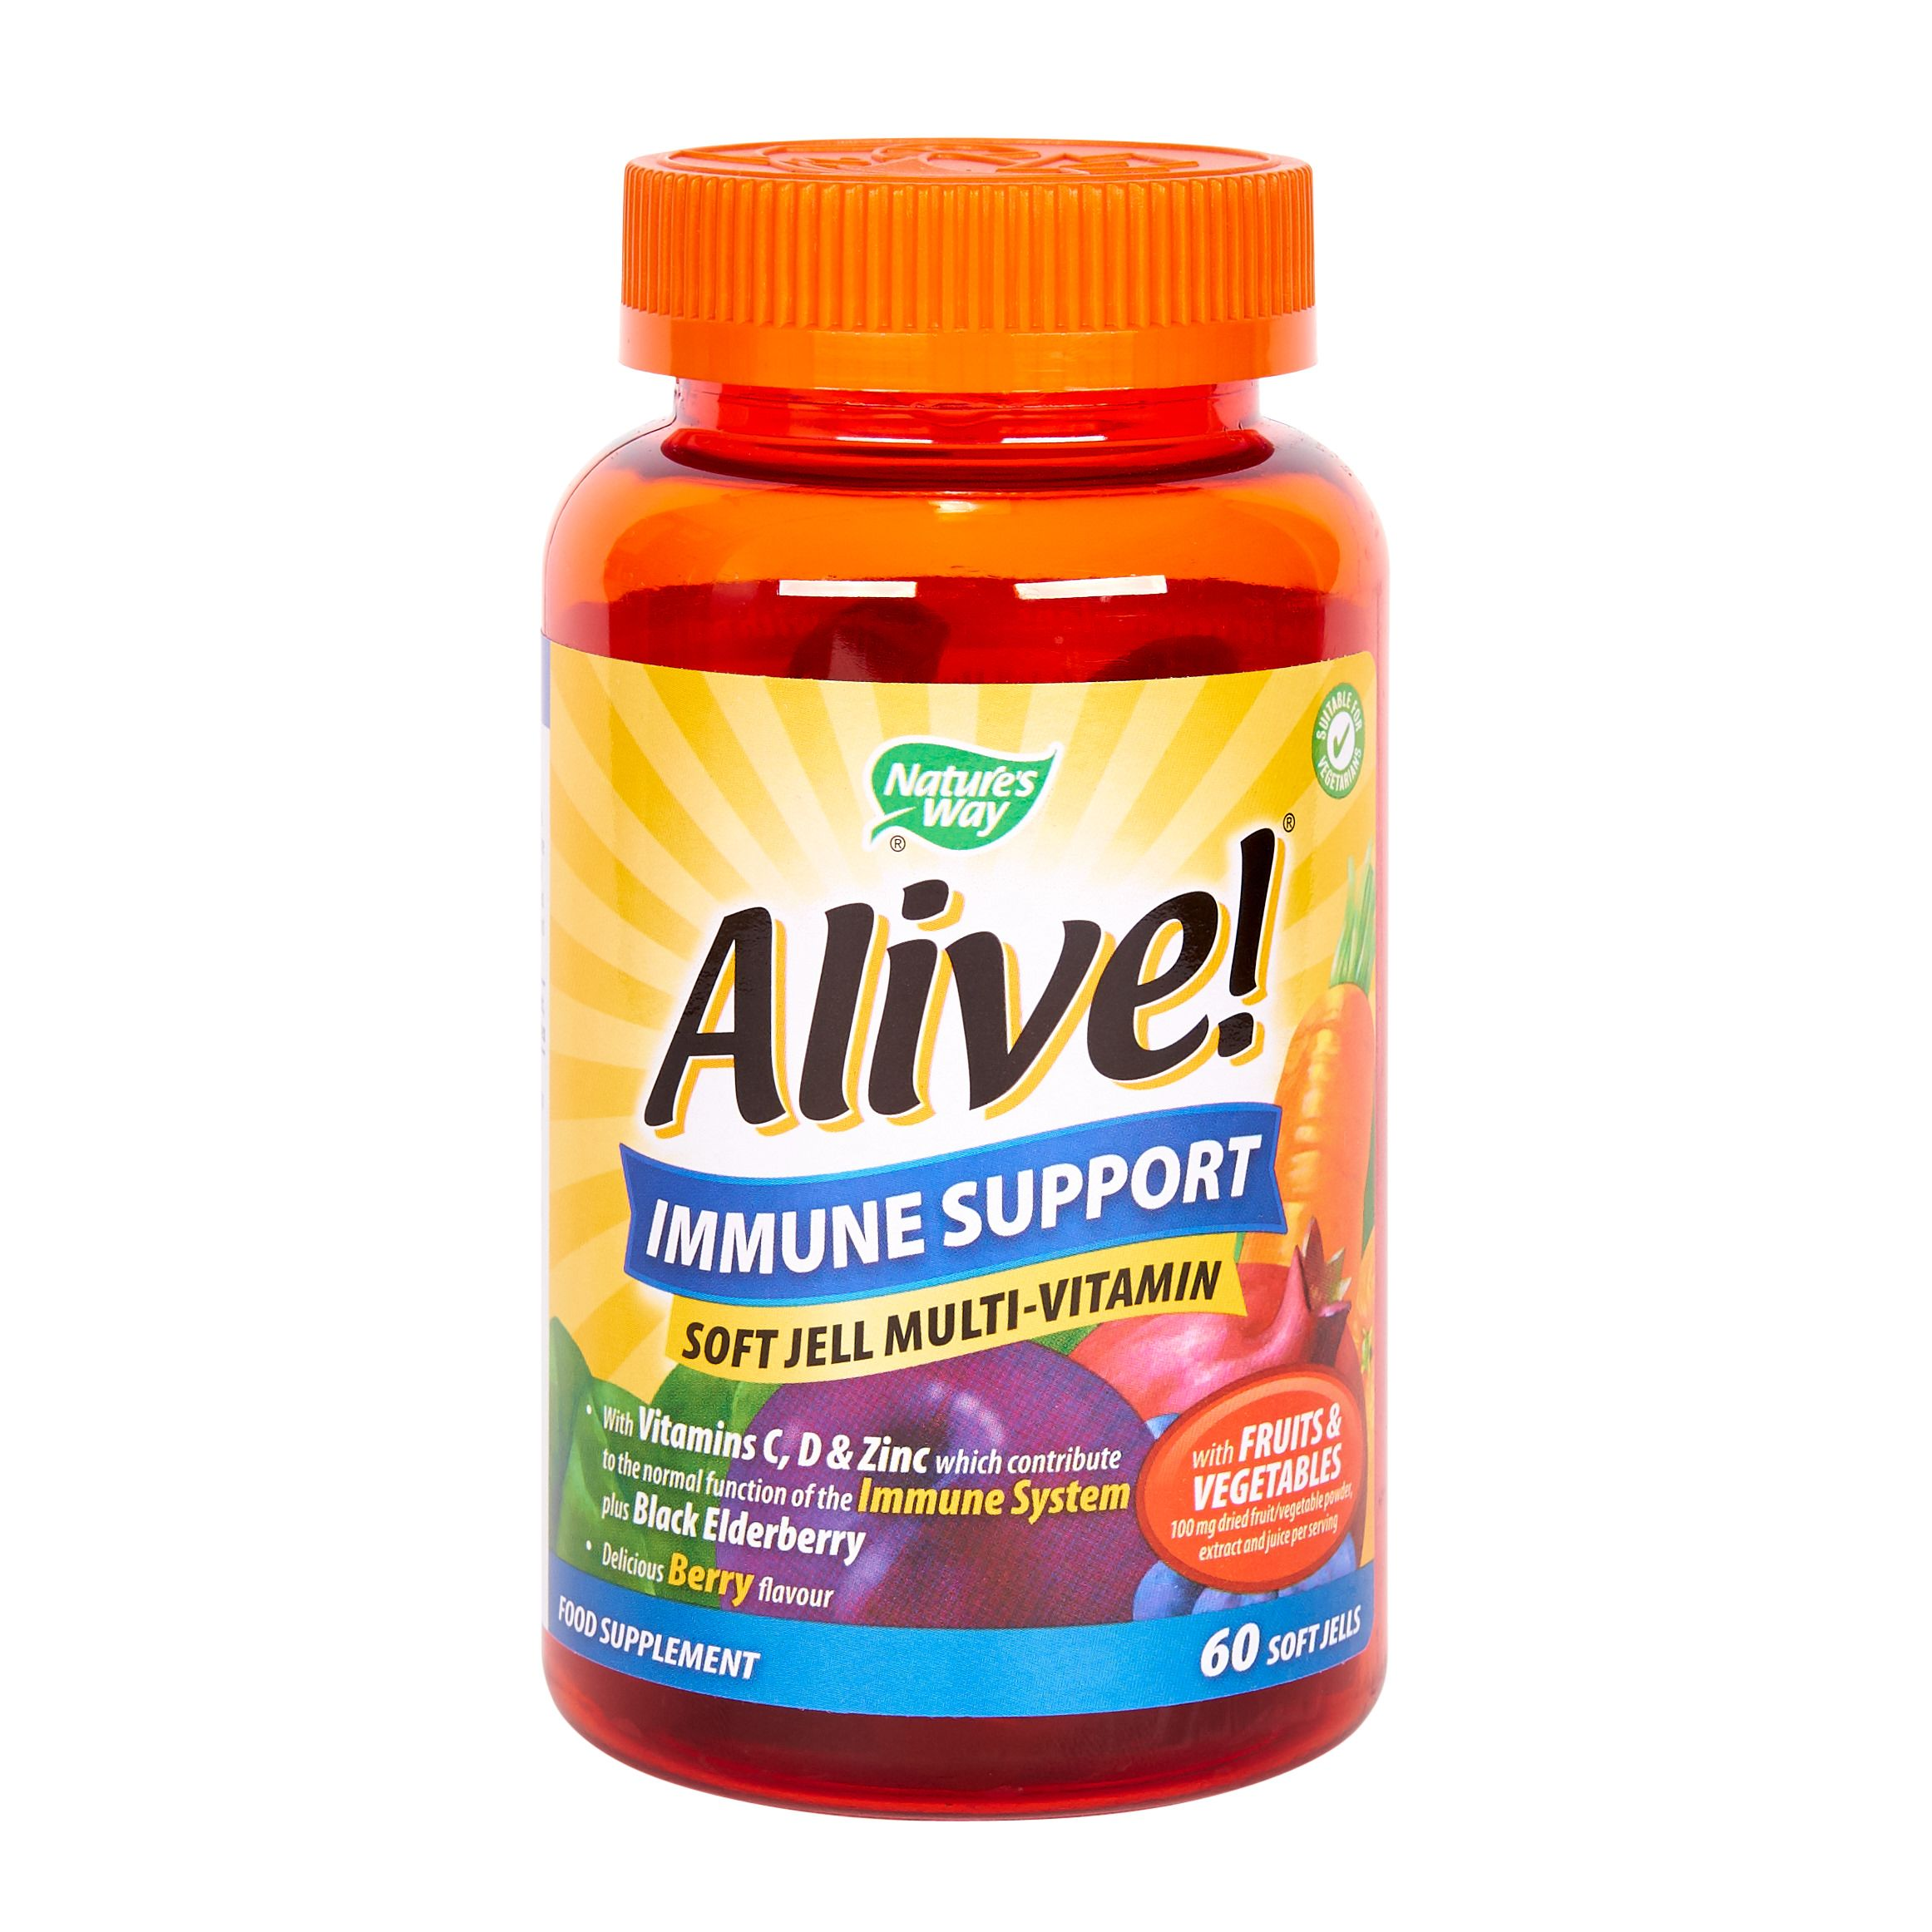 Nature's Way Alive! Immune Support